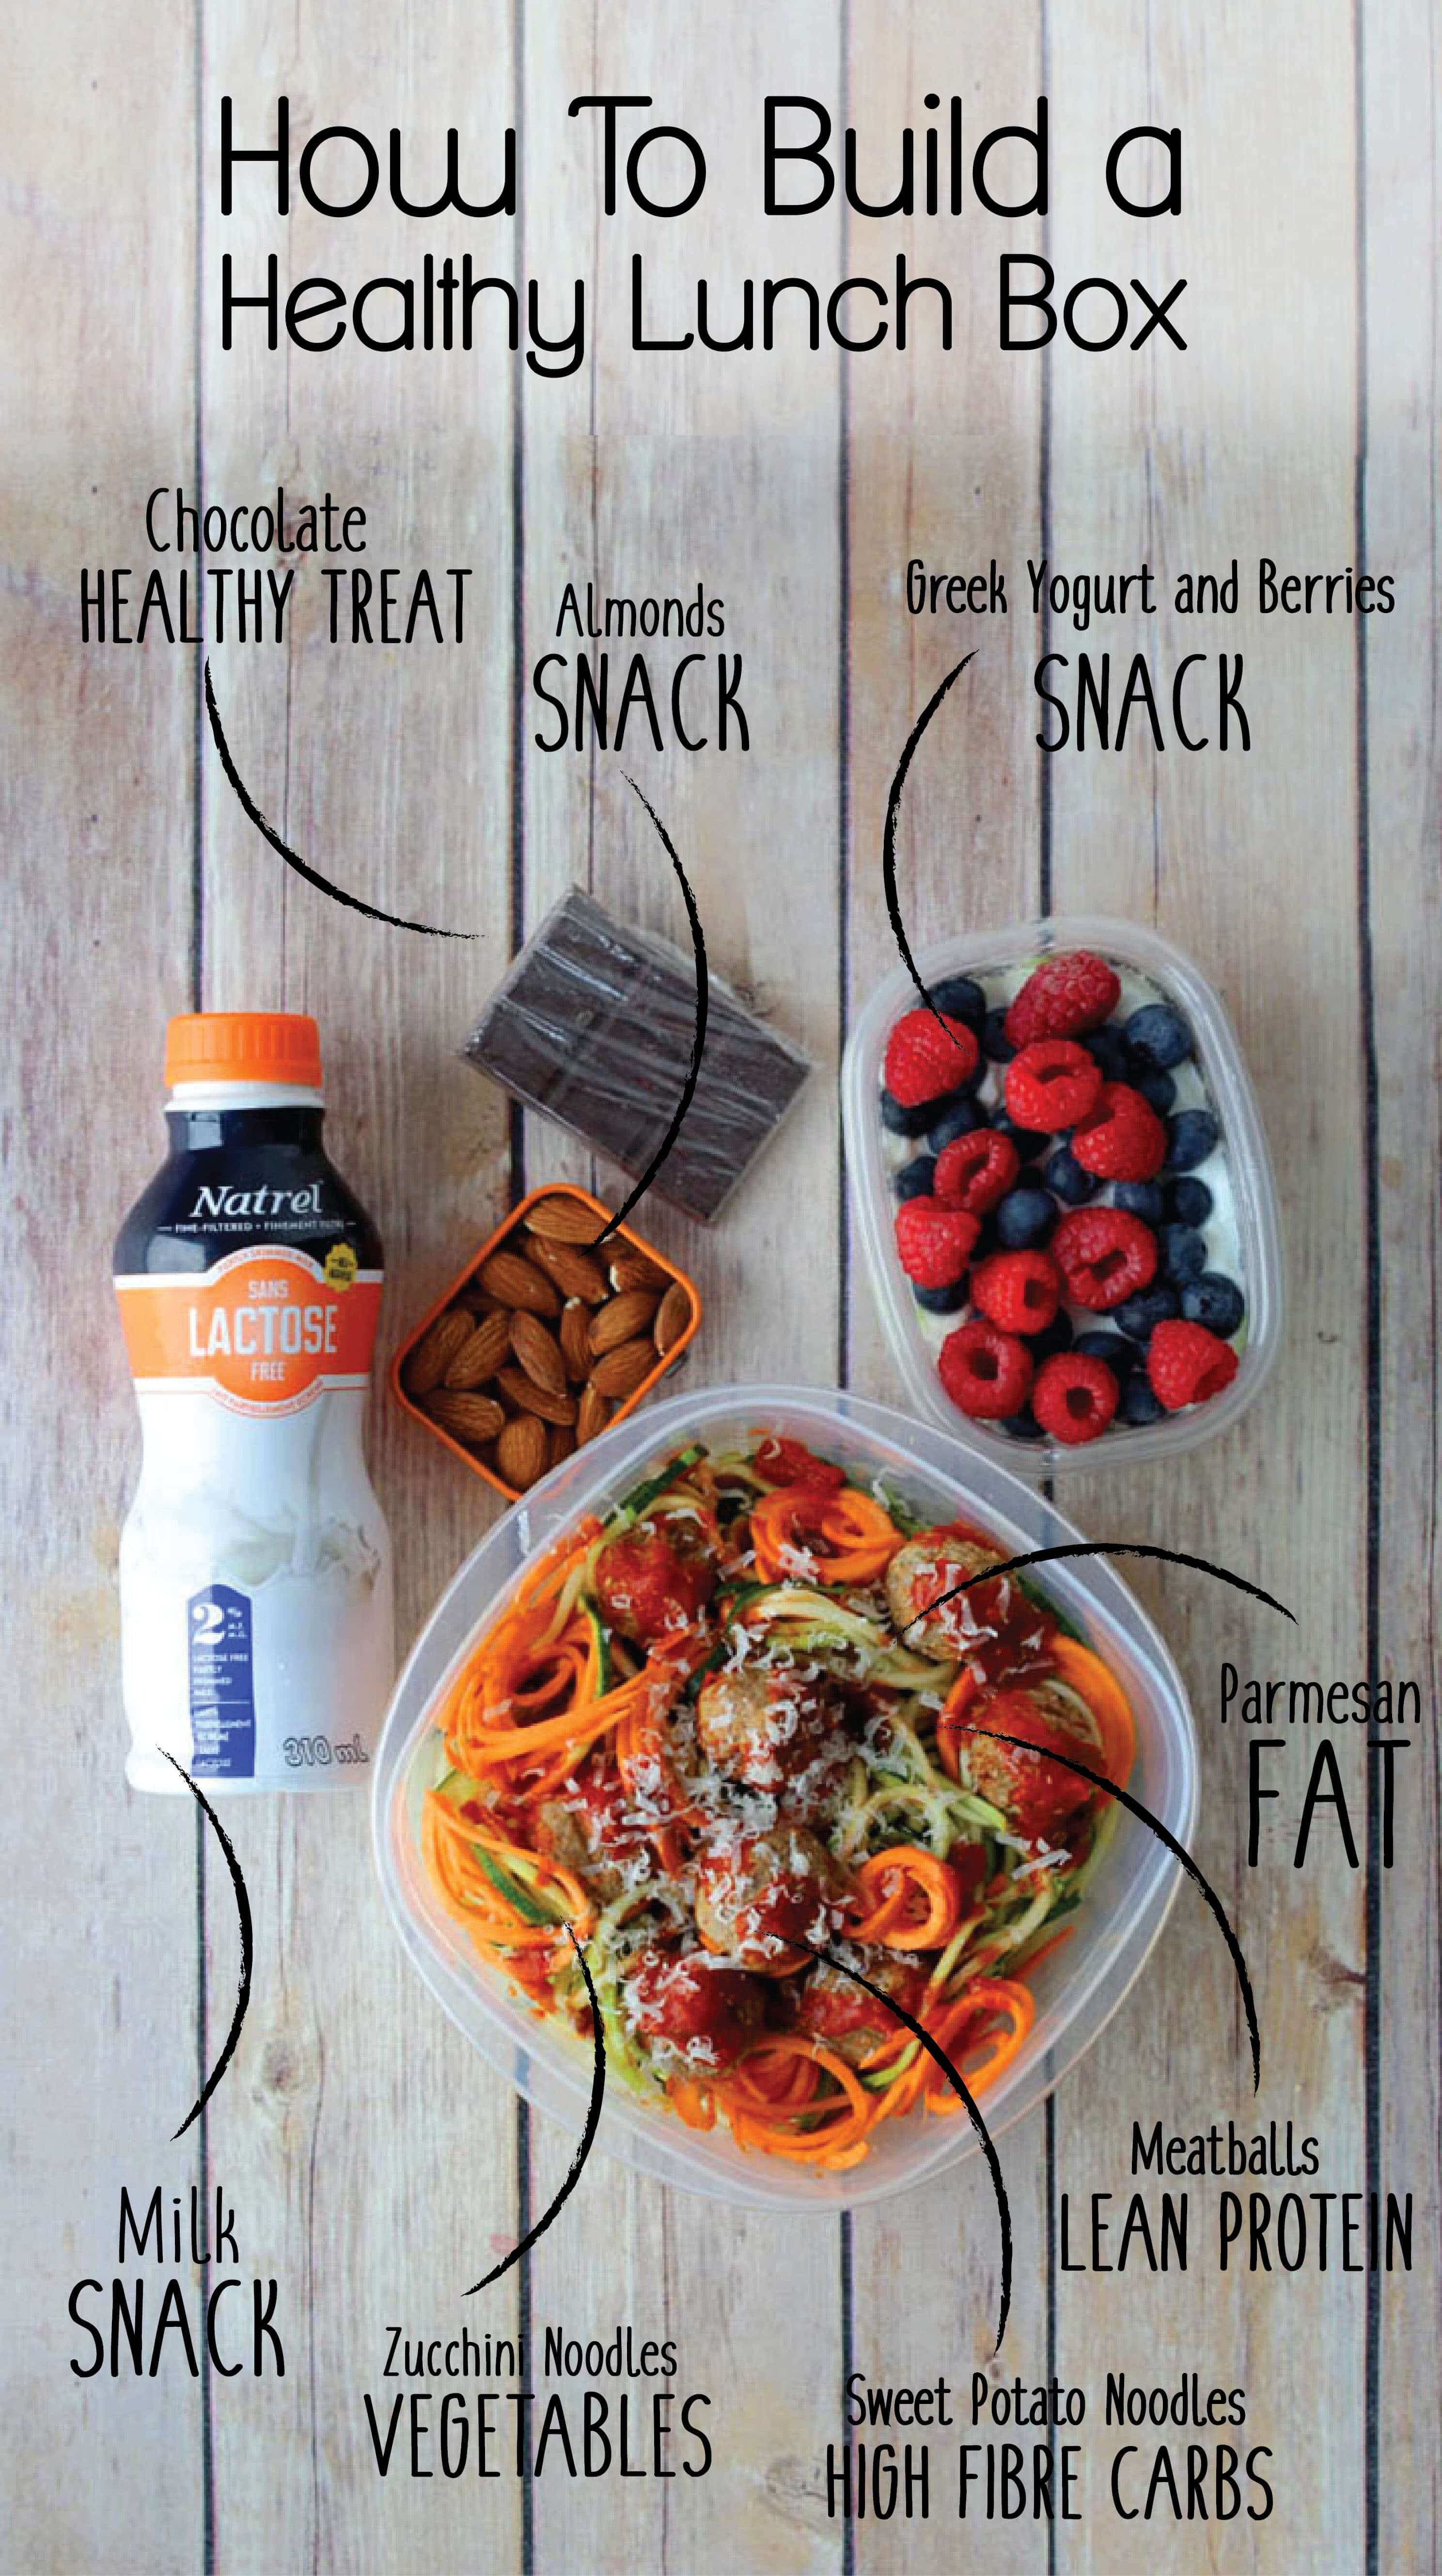 How To Pack A Healthy Lunch Box For Work Lunch Food Checklist Abbey S Kitchen